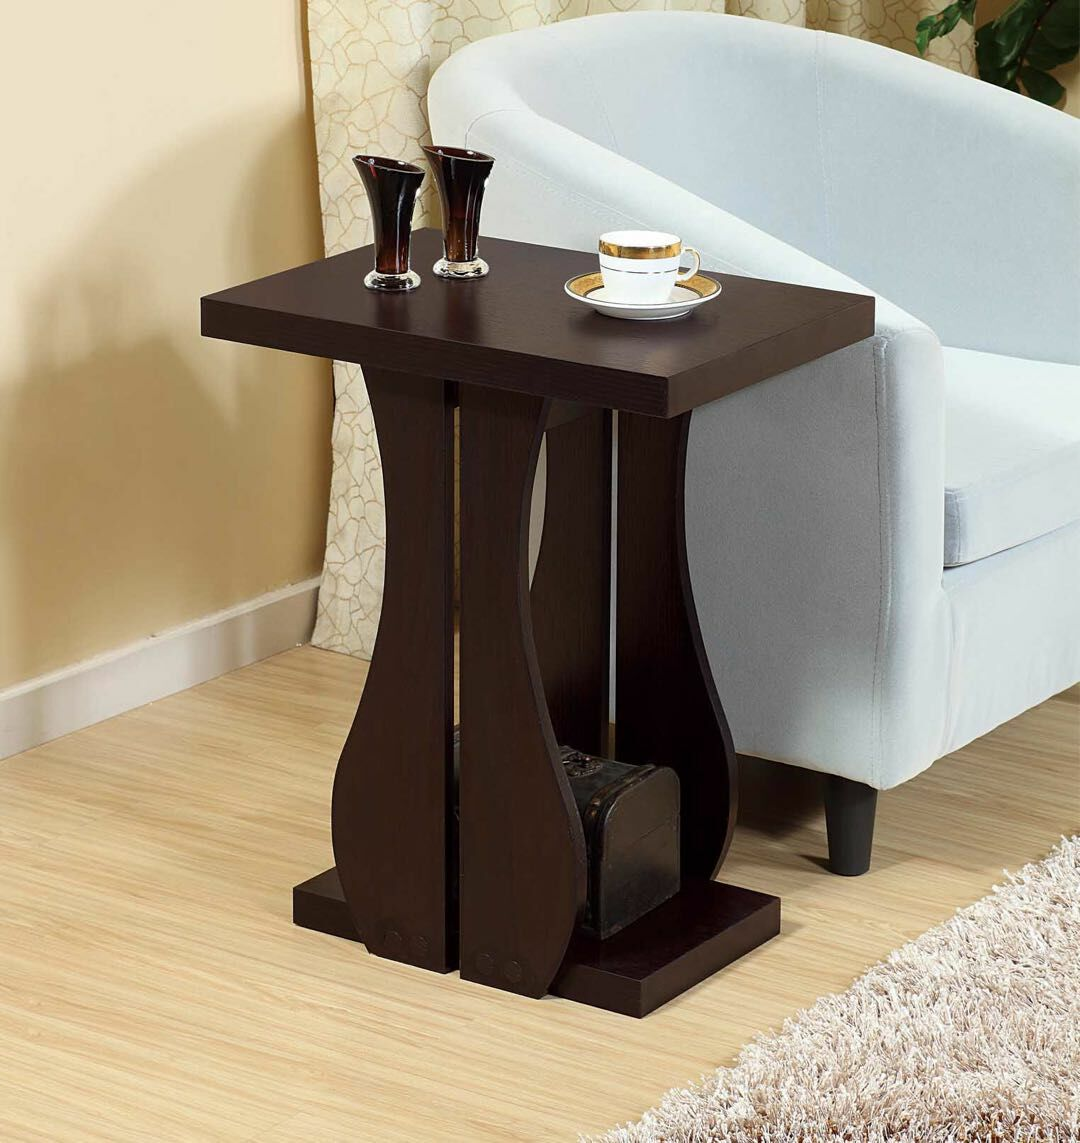 Melin Chairside End Table with Storage Color: Red Cocoa